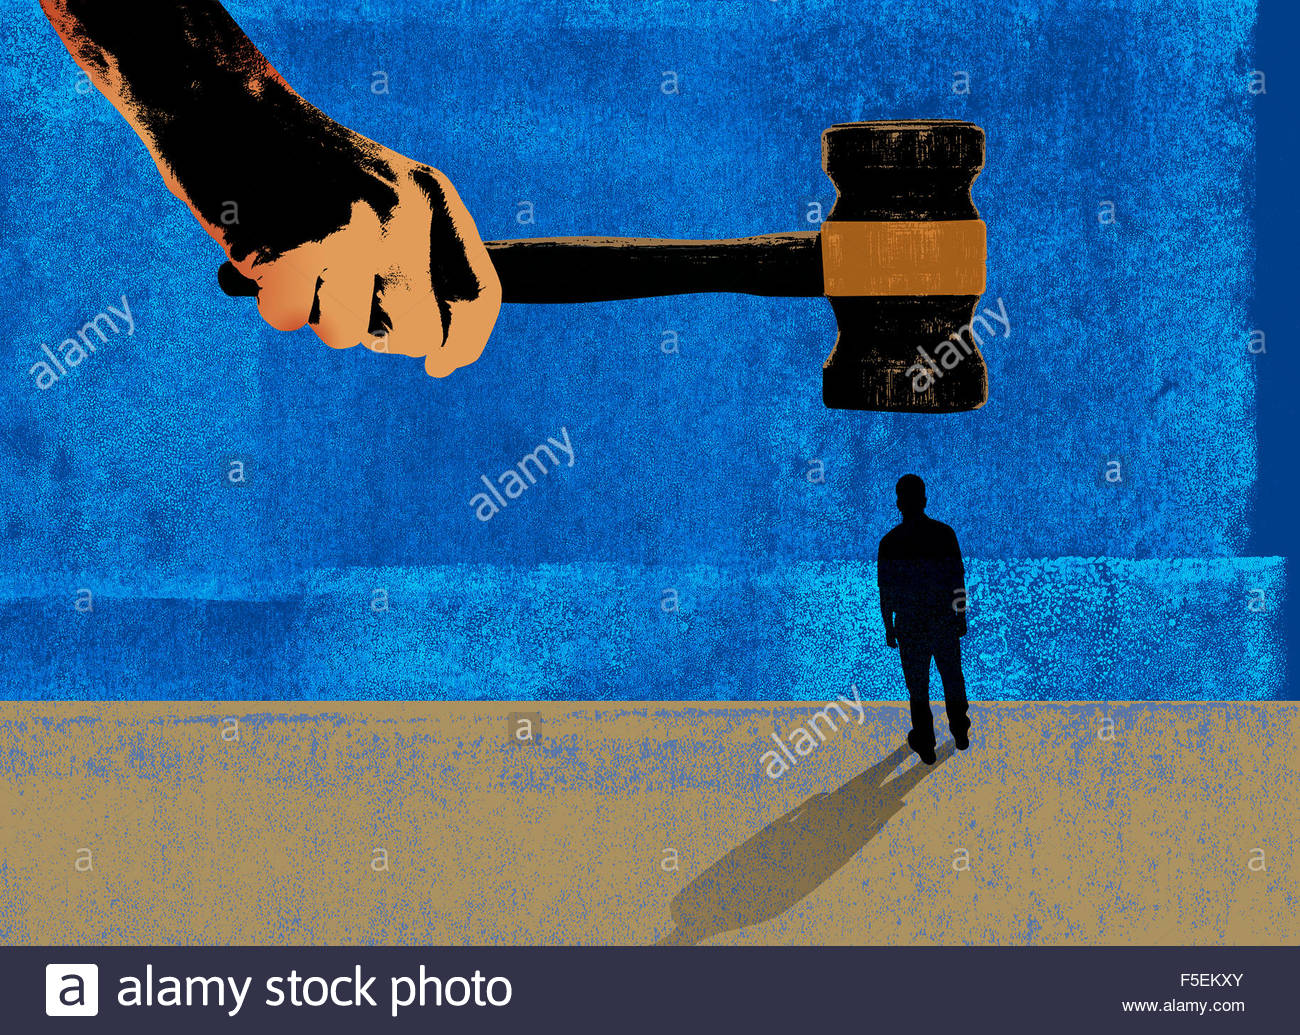 Large hand holding gavel about to hit small man - Stock Image